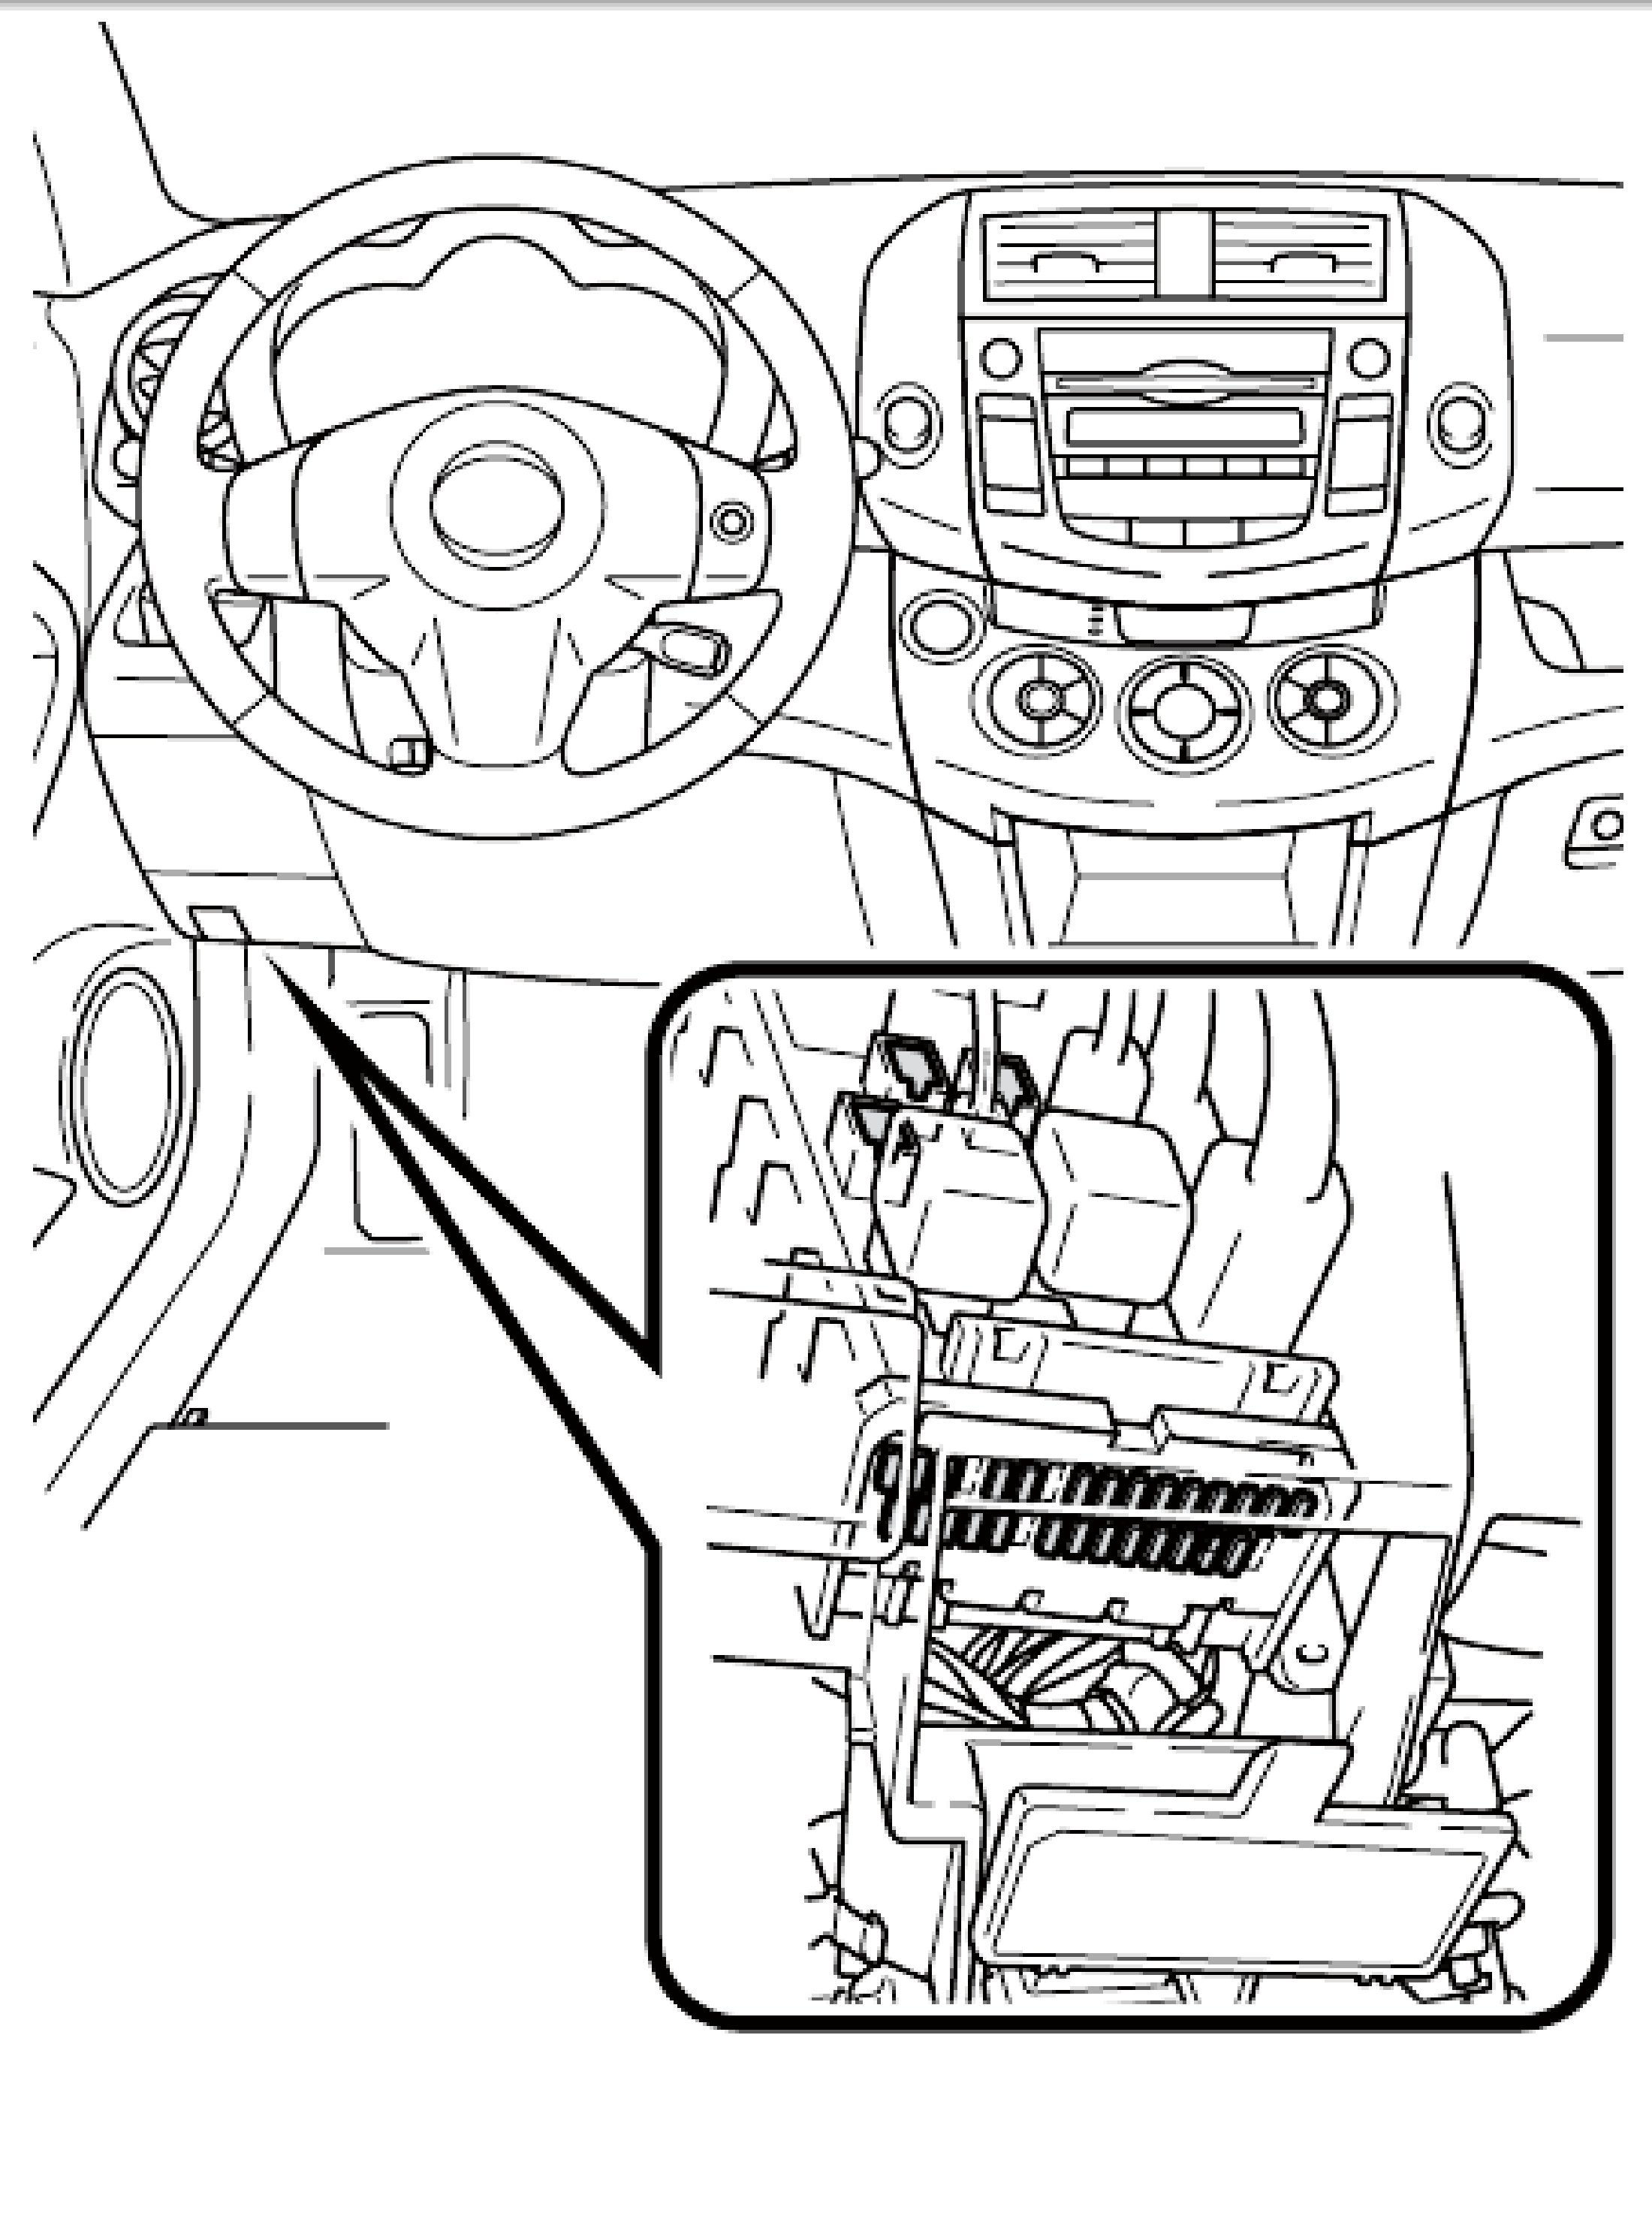 2006 Toyota Avalon Fuse Box : 27 Wiring Diagram Images